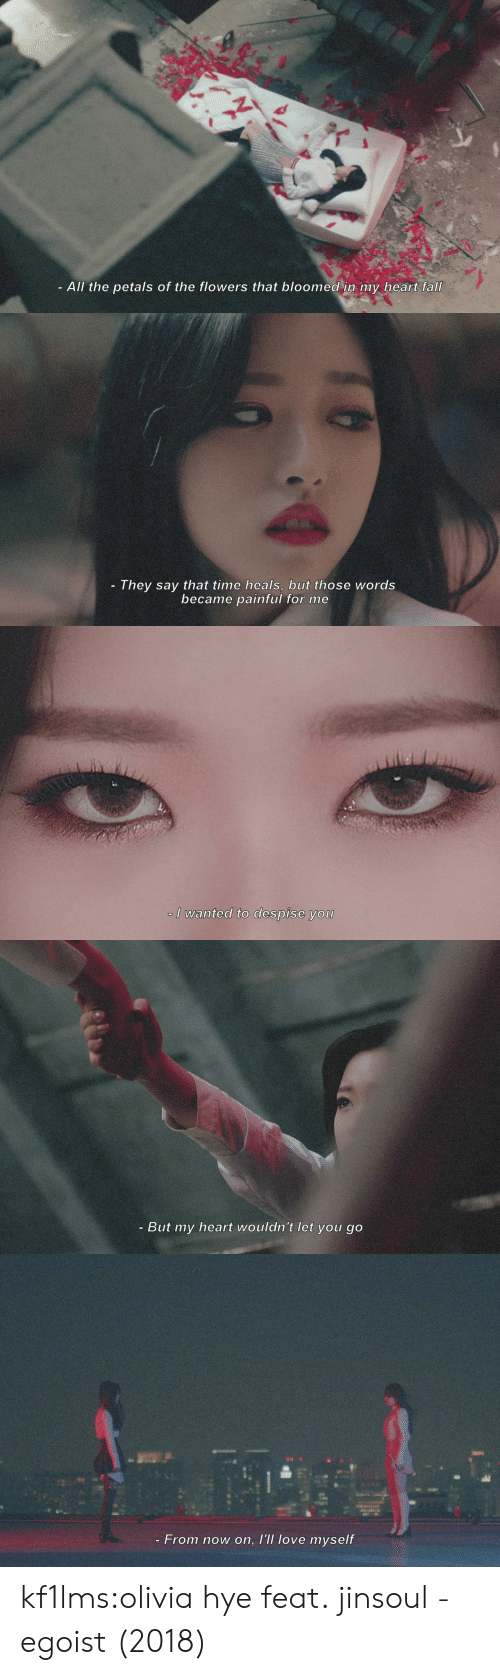 Fall, Love, and Tumblr: All the petals of the flowers that bloomed in my heart fall   They say that time heals, buut those words  became painful for me   I wanted to despise you   - But my heart wouldn't let you go   - From now on, l'll love myself kf1lms:olivia hye feat. jinsoul - egoist (2018)